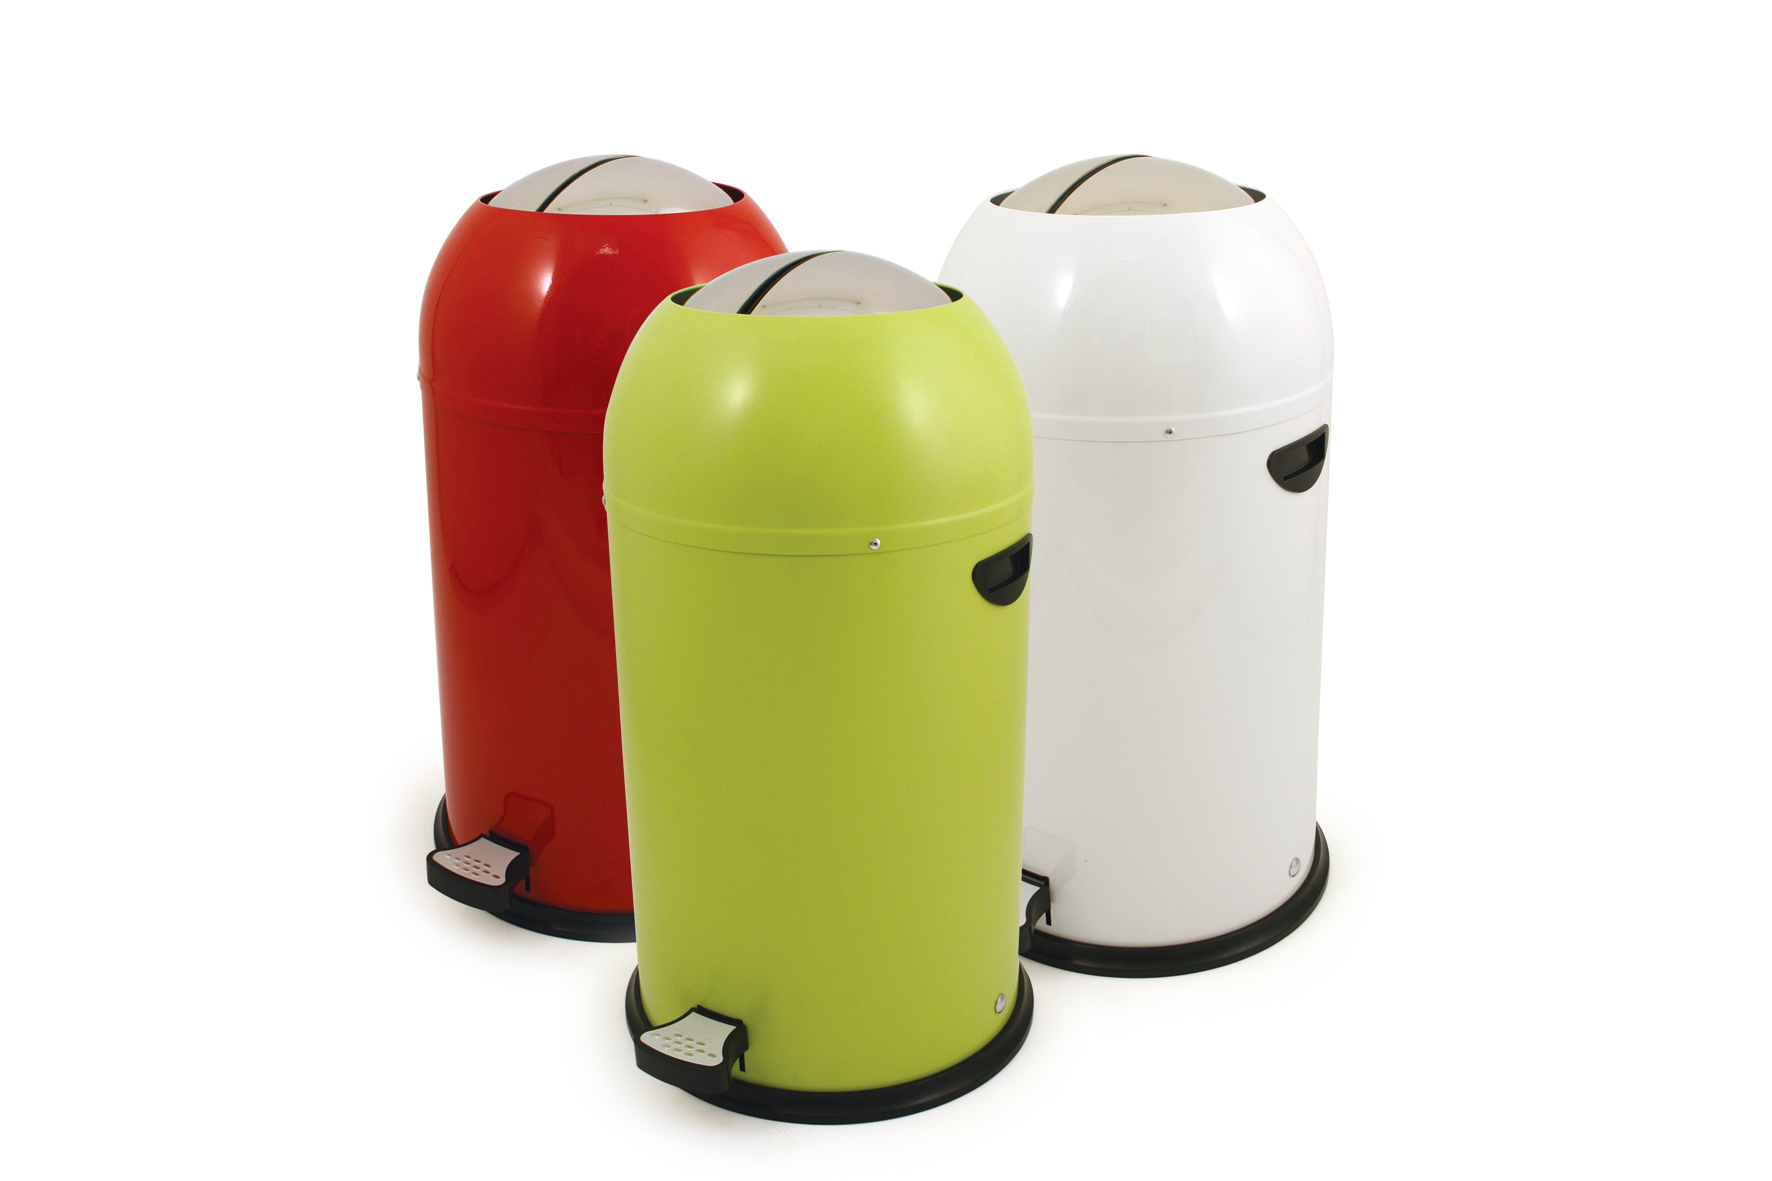 White Kitchen Bin butterfly kitchen pedal bin 33l in lime green red white | ebay